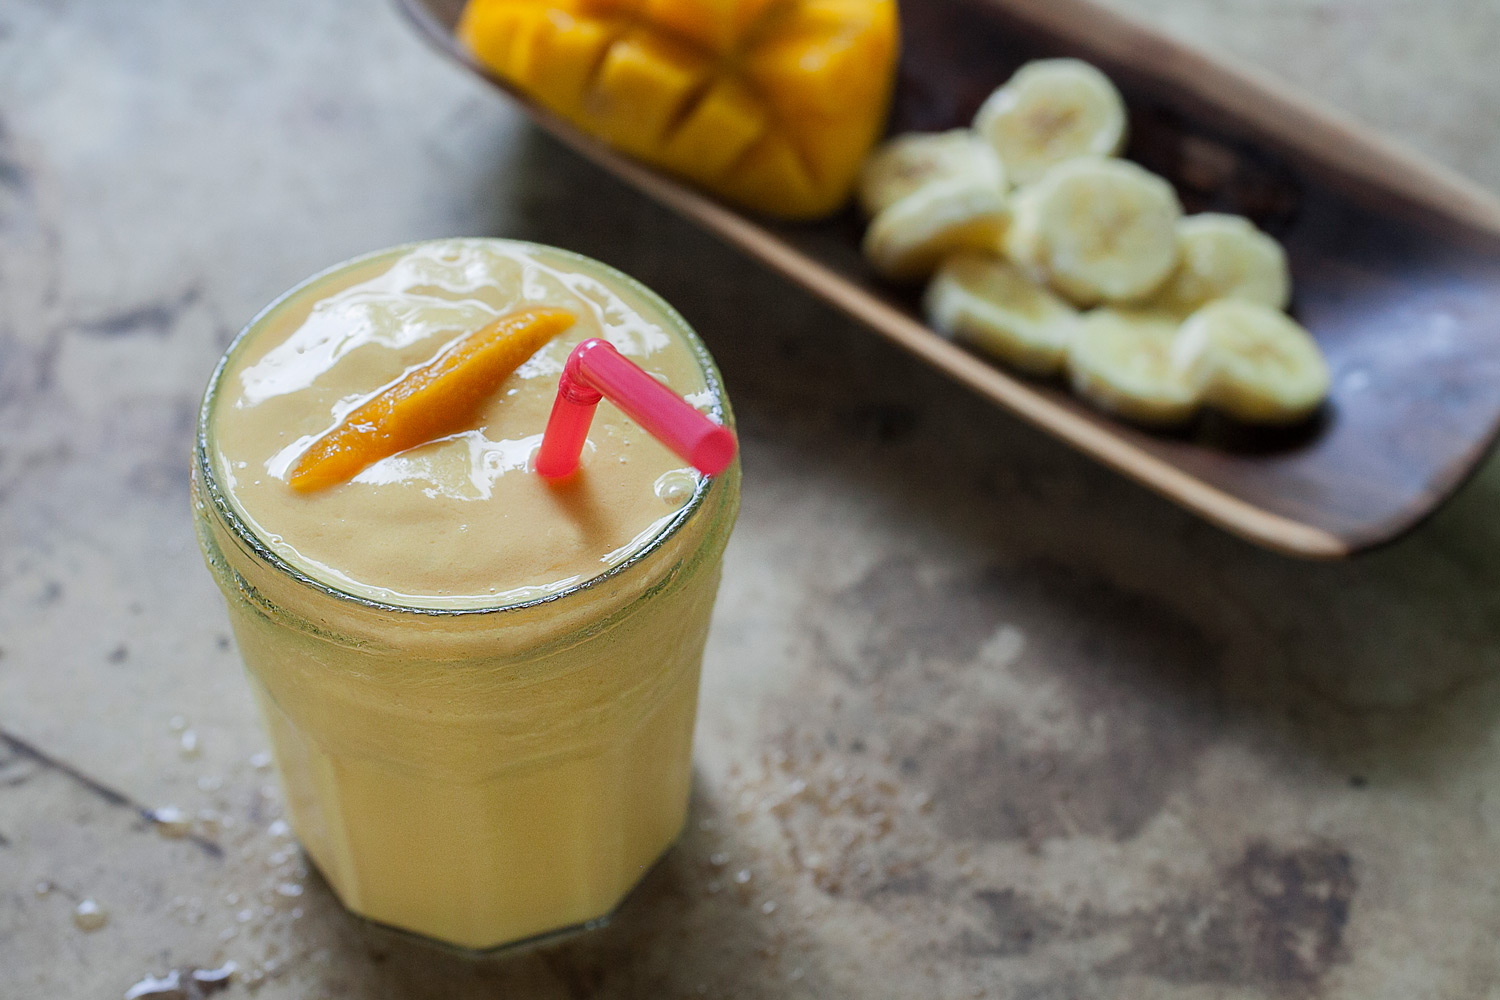 Banana and Mango Yogurt Smoothie